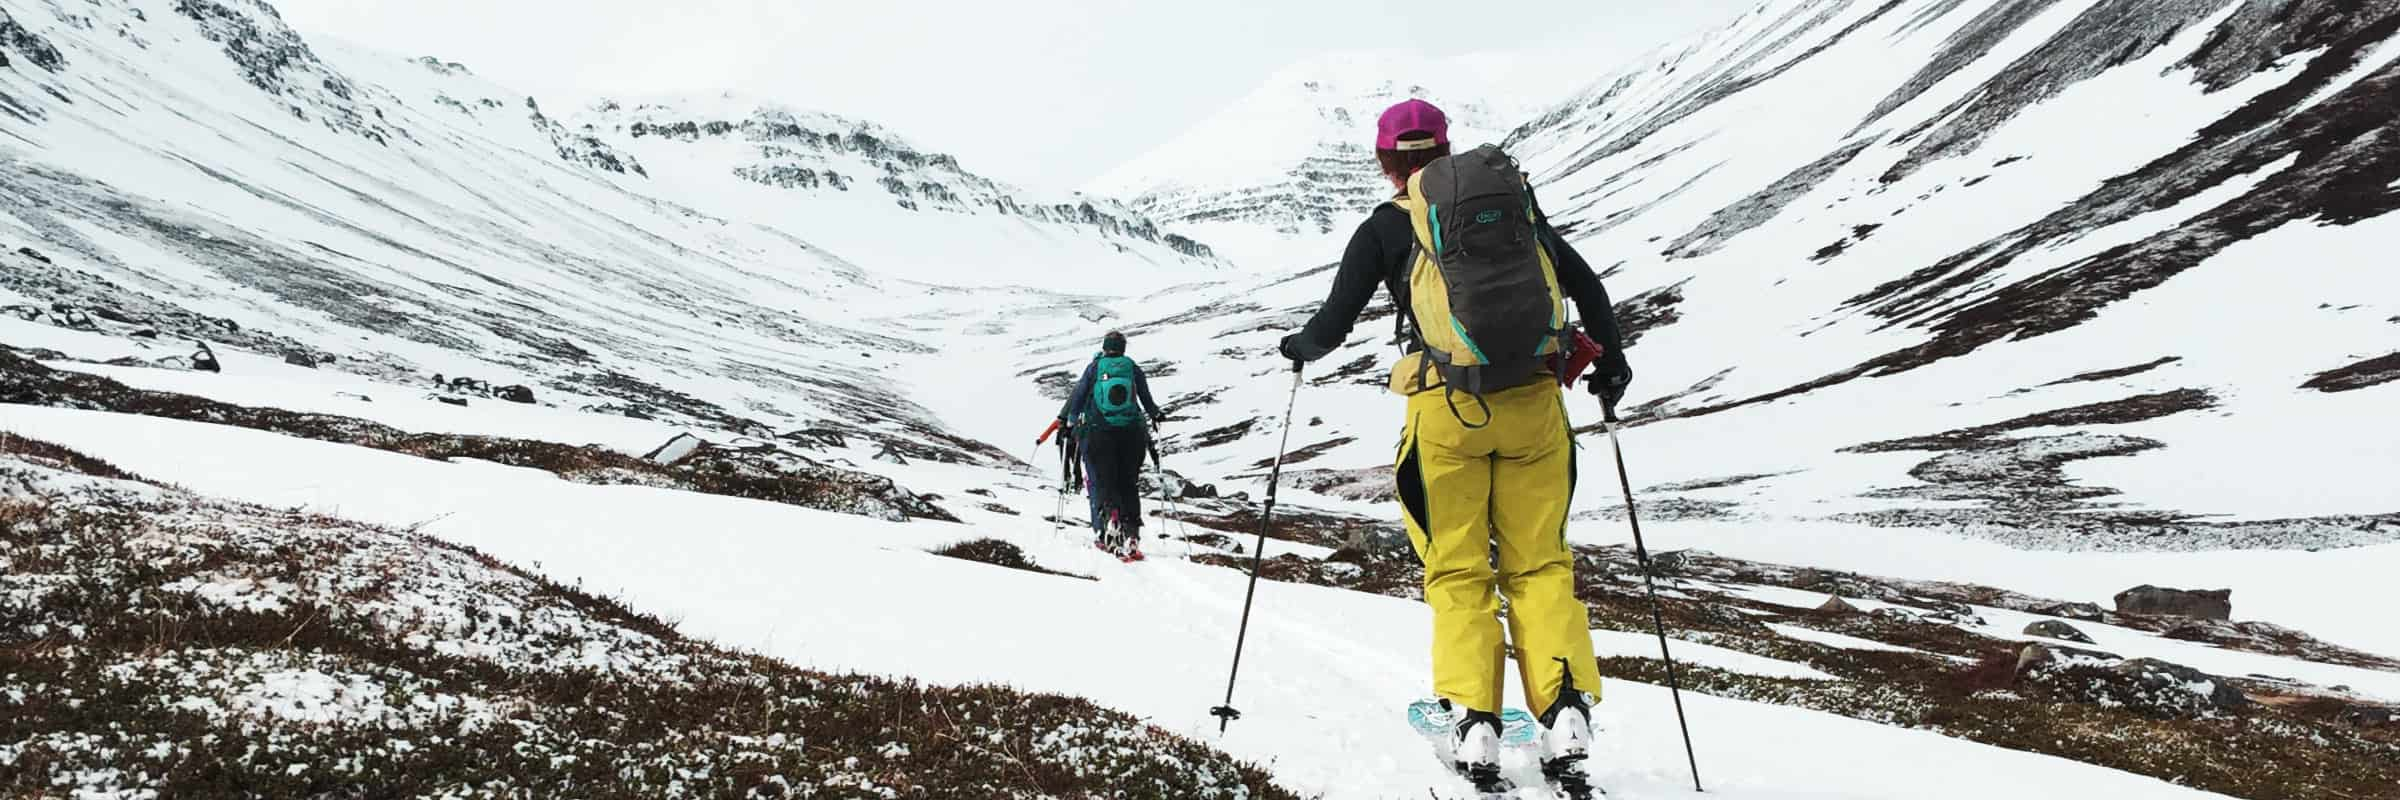 . Smartwool, Iceland, and Ski Touring